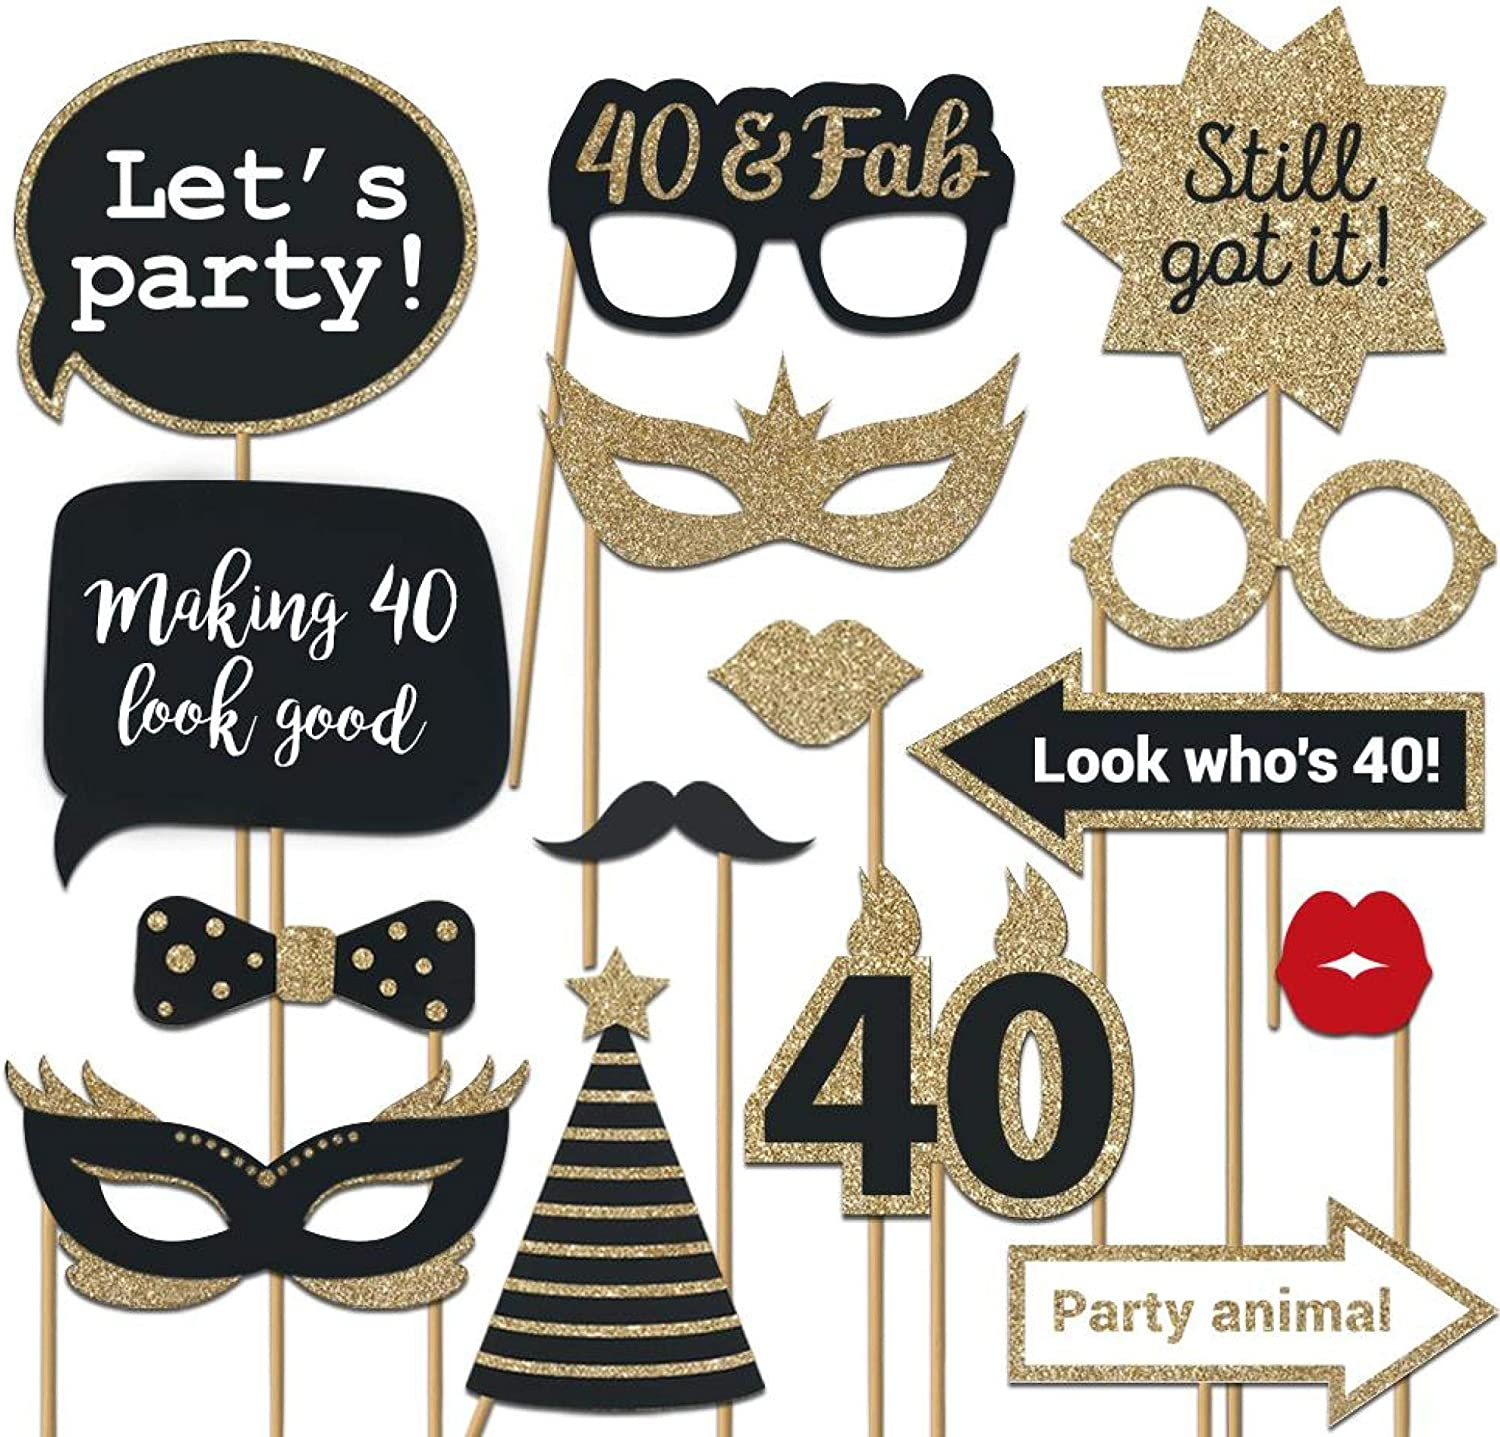 Fully Assembled 40th Birthday Photo Booth Props - Set of 30 - Black & Gold Selfie Signs - 40th Party Supplies & Decorations - Cute 40th Bday Designs with Real Glitter - Did we mention no DIY?